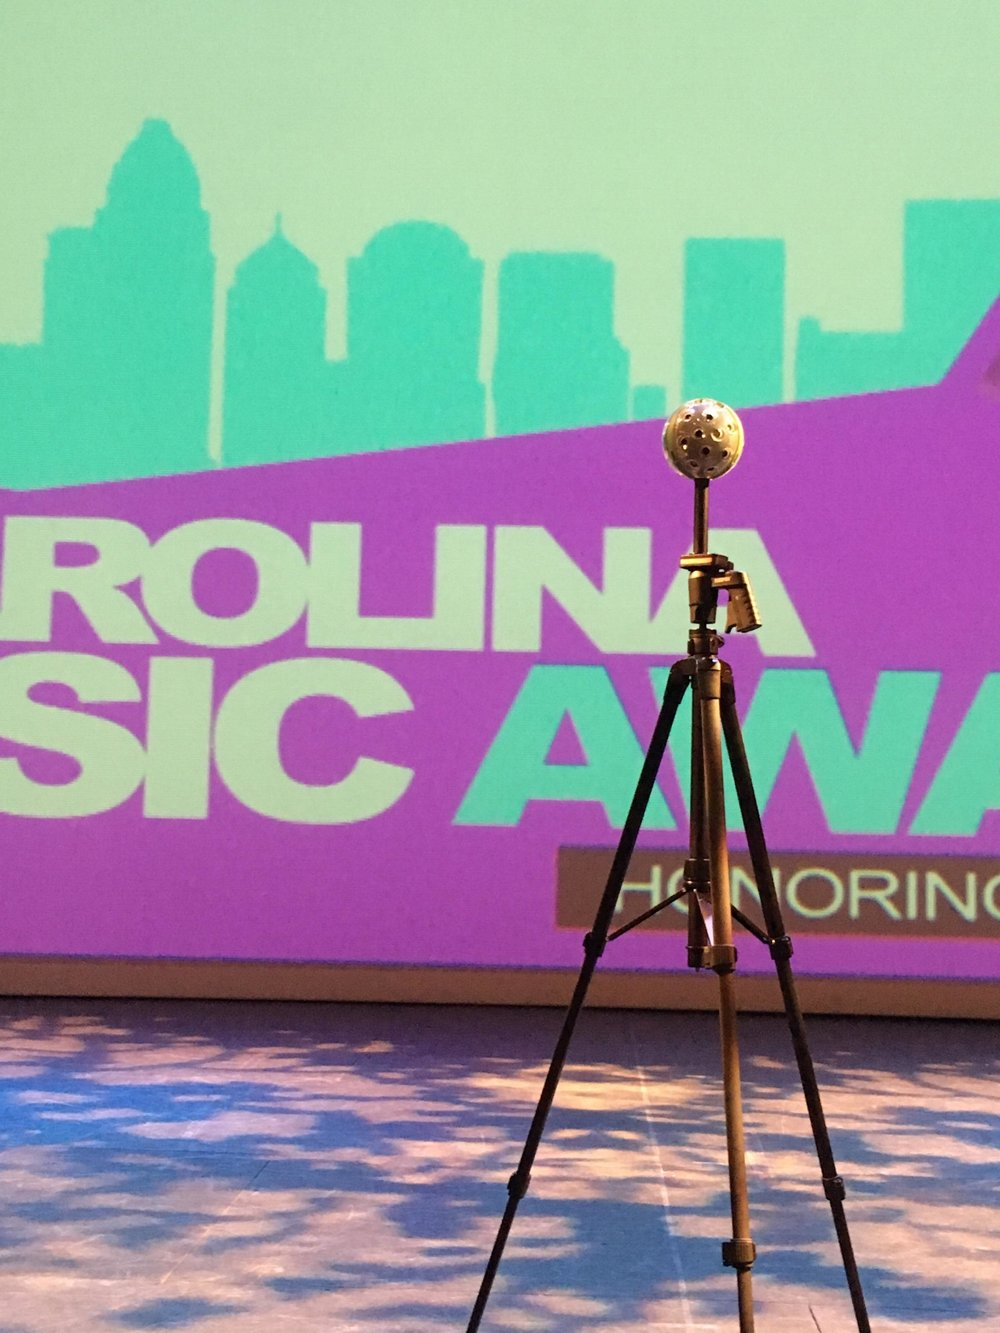 Our Panono 360° camera on stage at the Carolina Music Awards